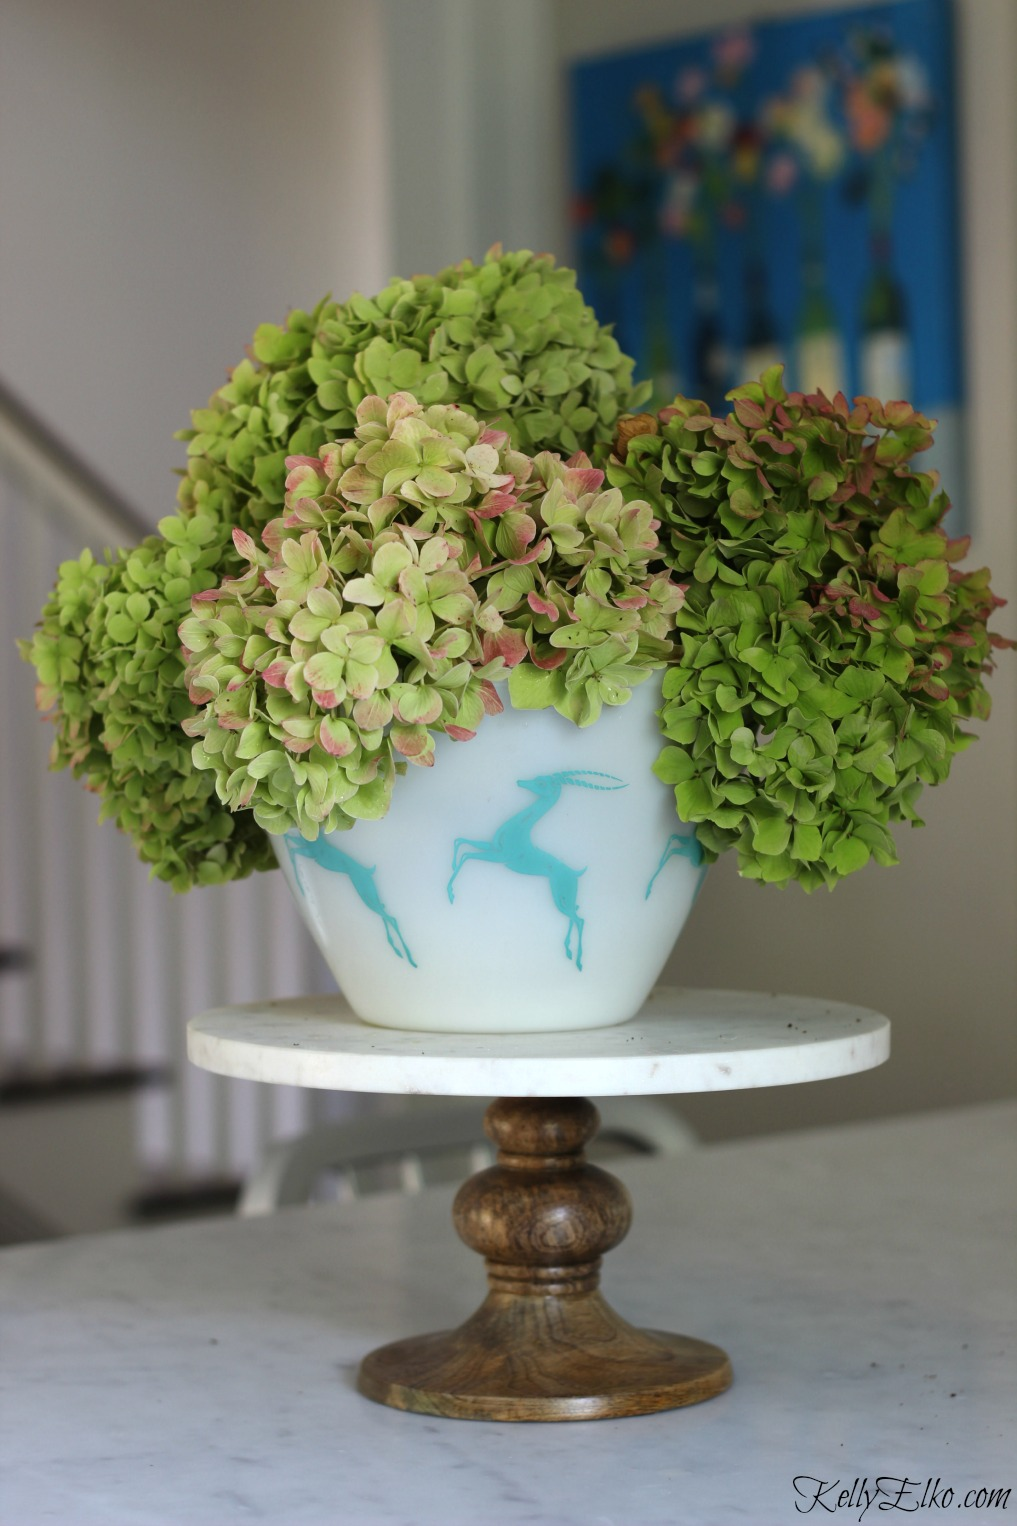 Hydrangea fall tips - when and where to cut plus an easy way to dry flowers kellyelko.com